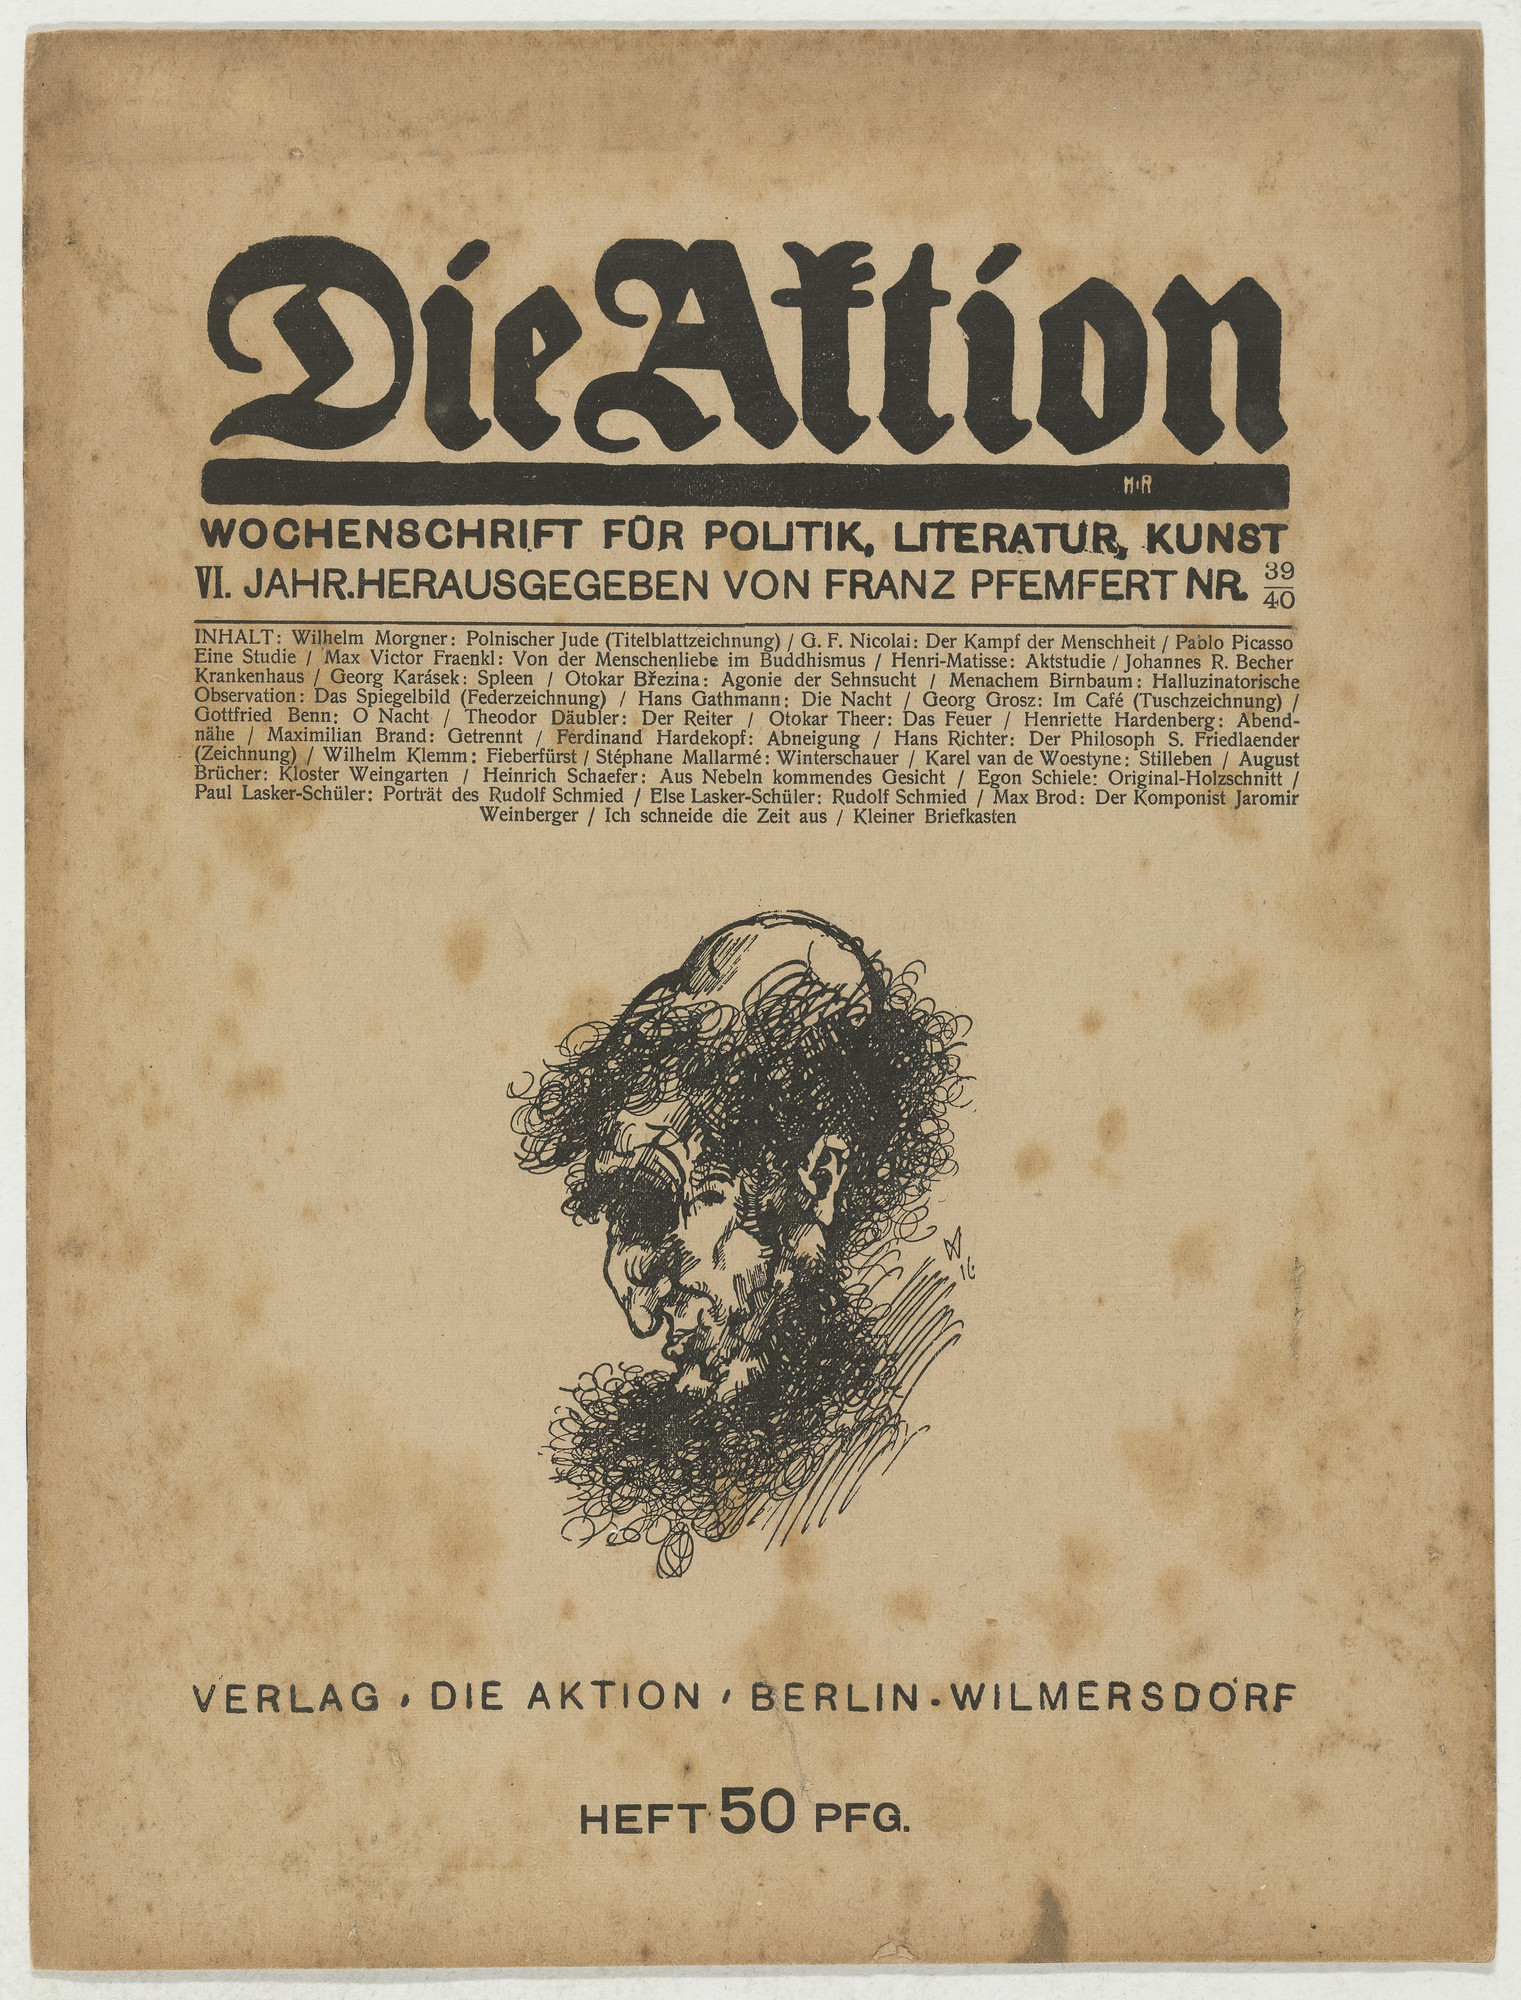 Egon Schiele. Die Aktion, vol. 6, no. 39/40. September 30, 1916